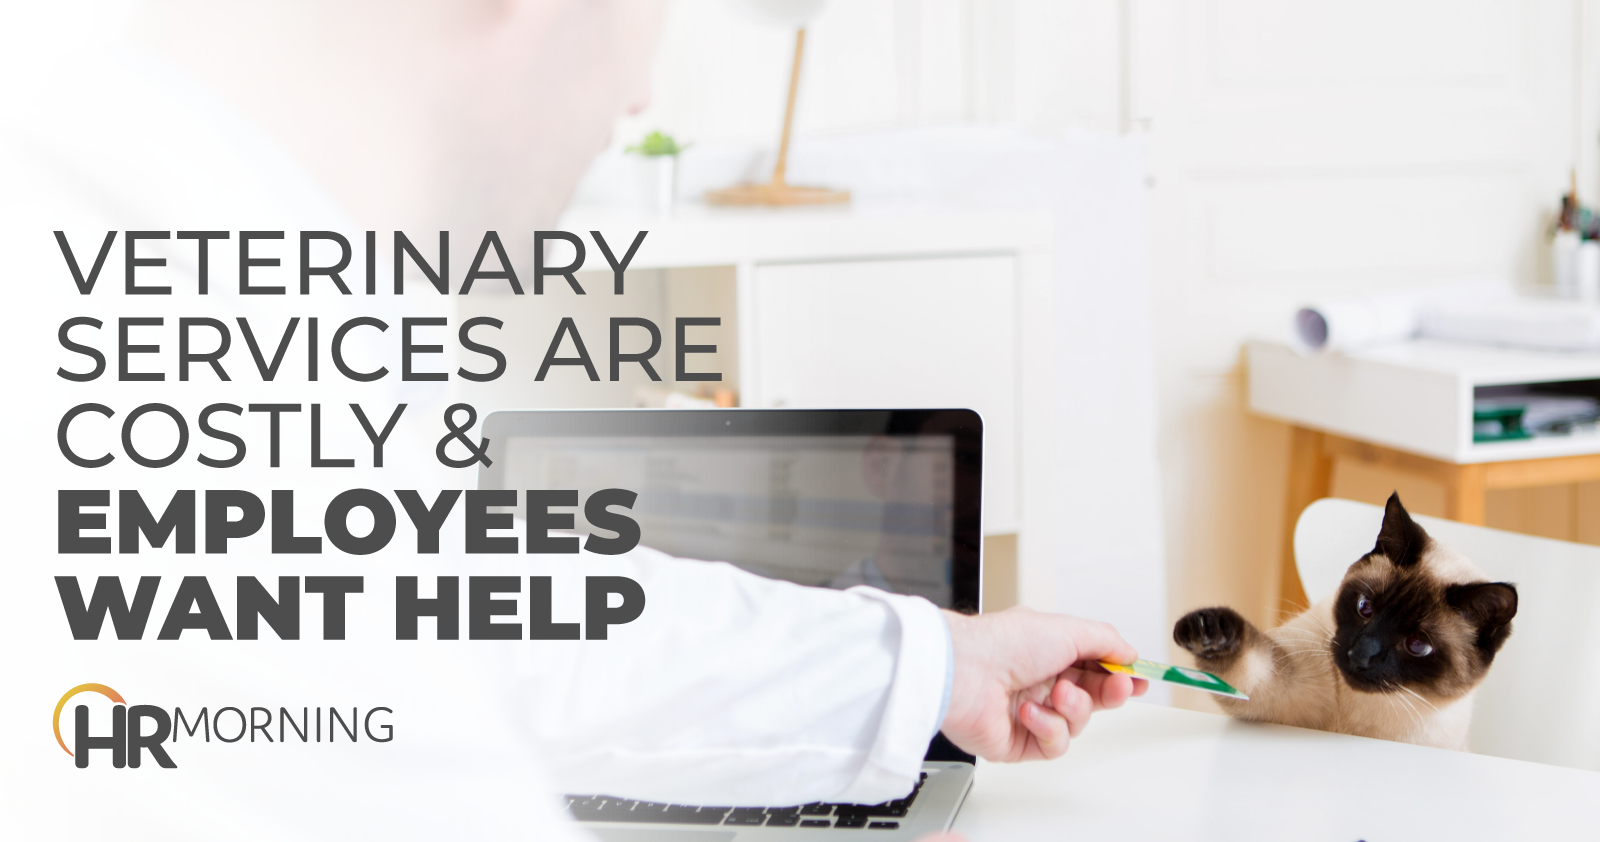 Veterinary Services Are Costly & Employees Want Help